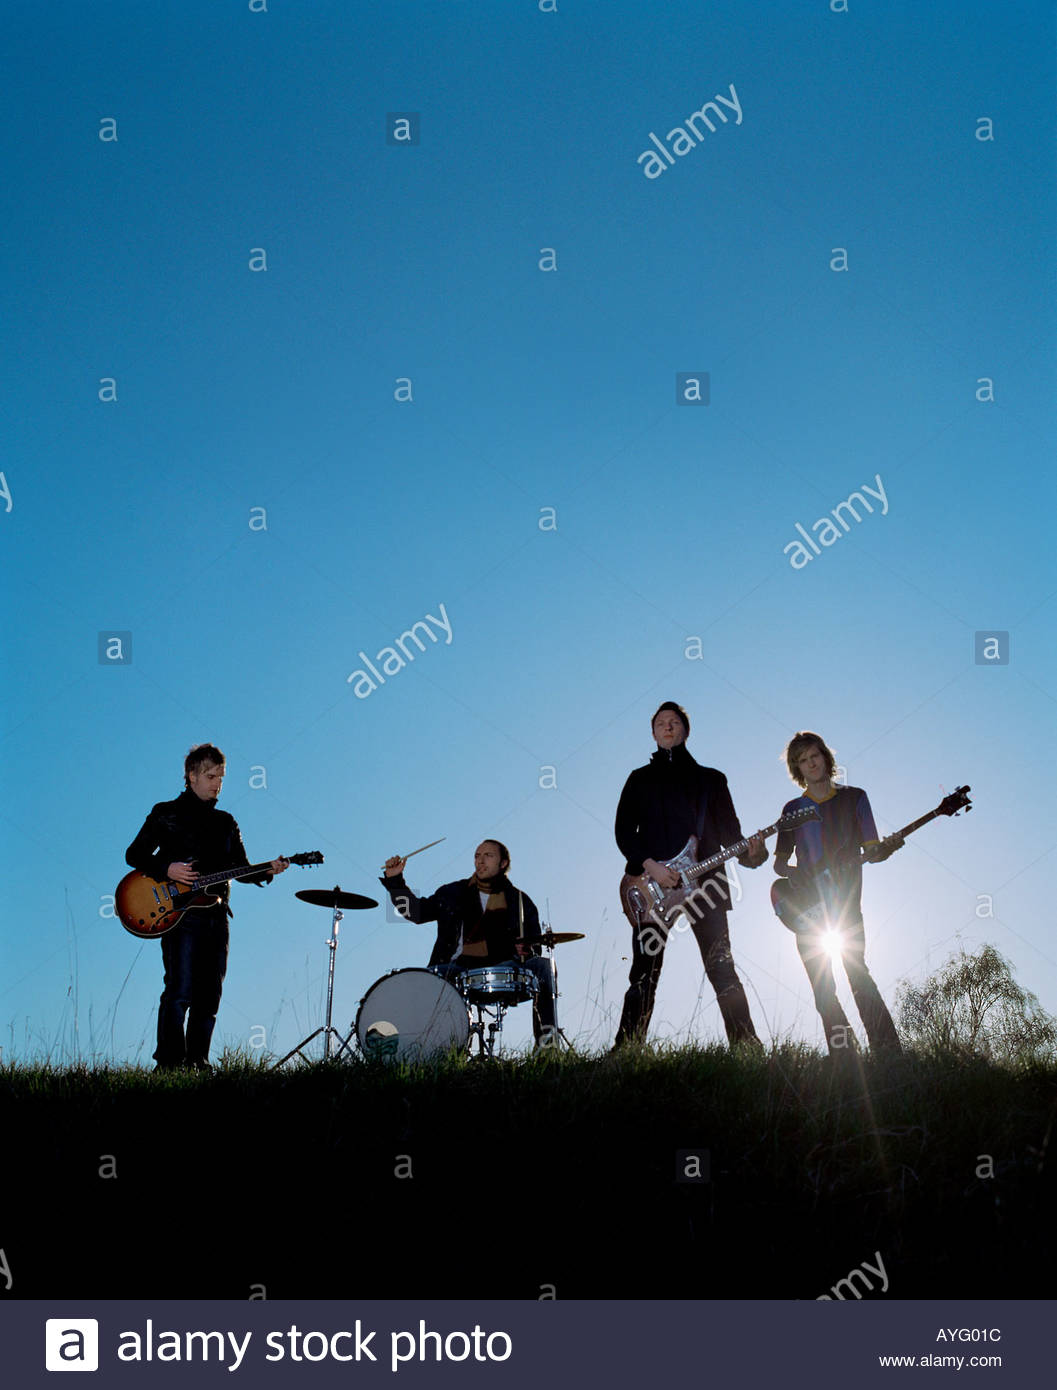 A rock band playing outside - Stock Image